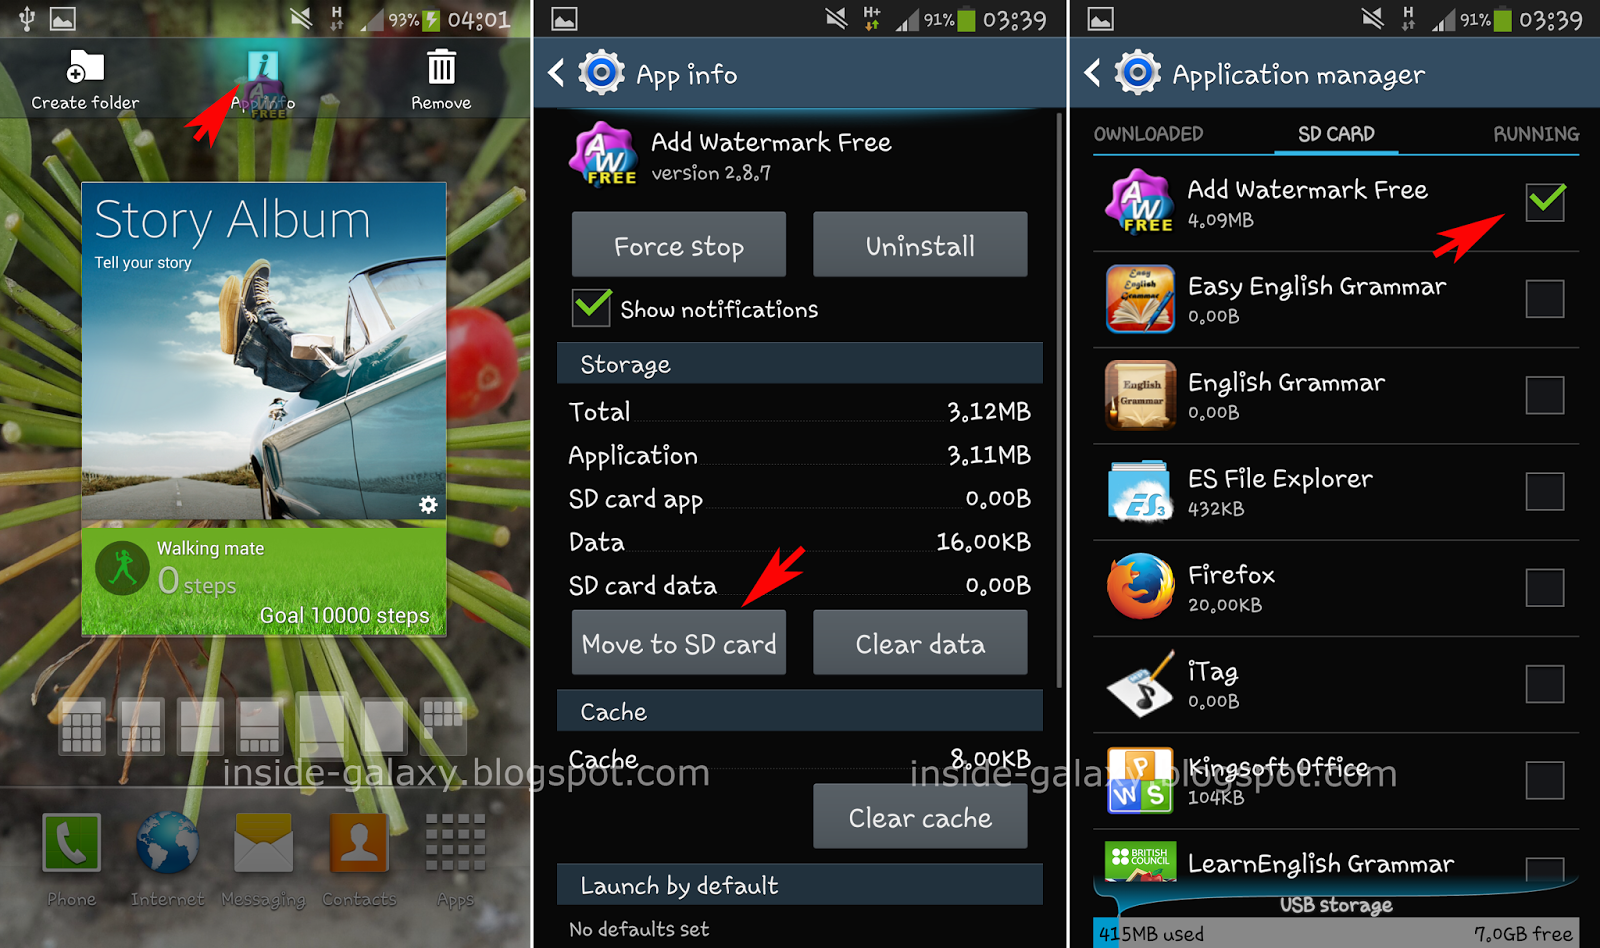 Samsung Galaxy S4: How to Move Apps to SD Card or to Device Storage